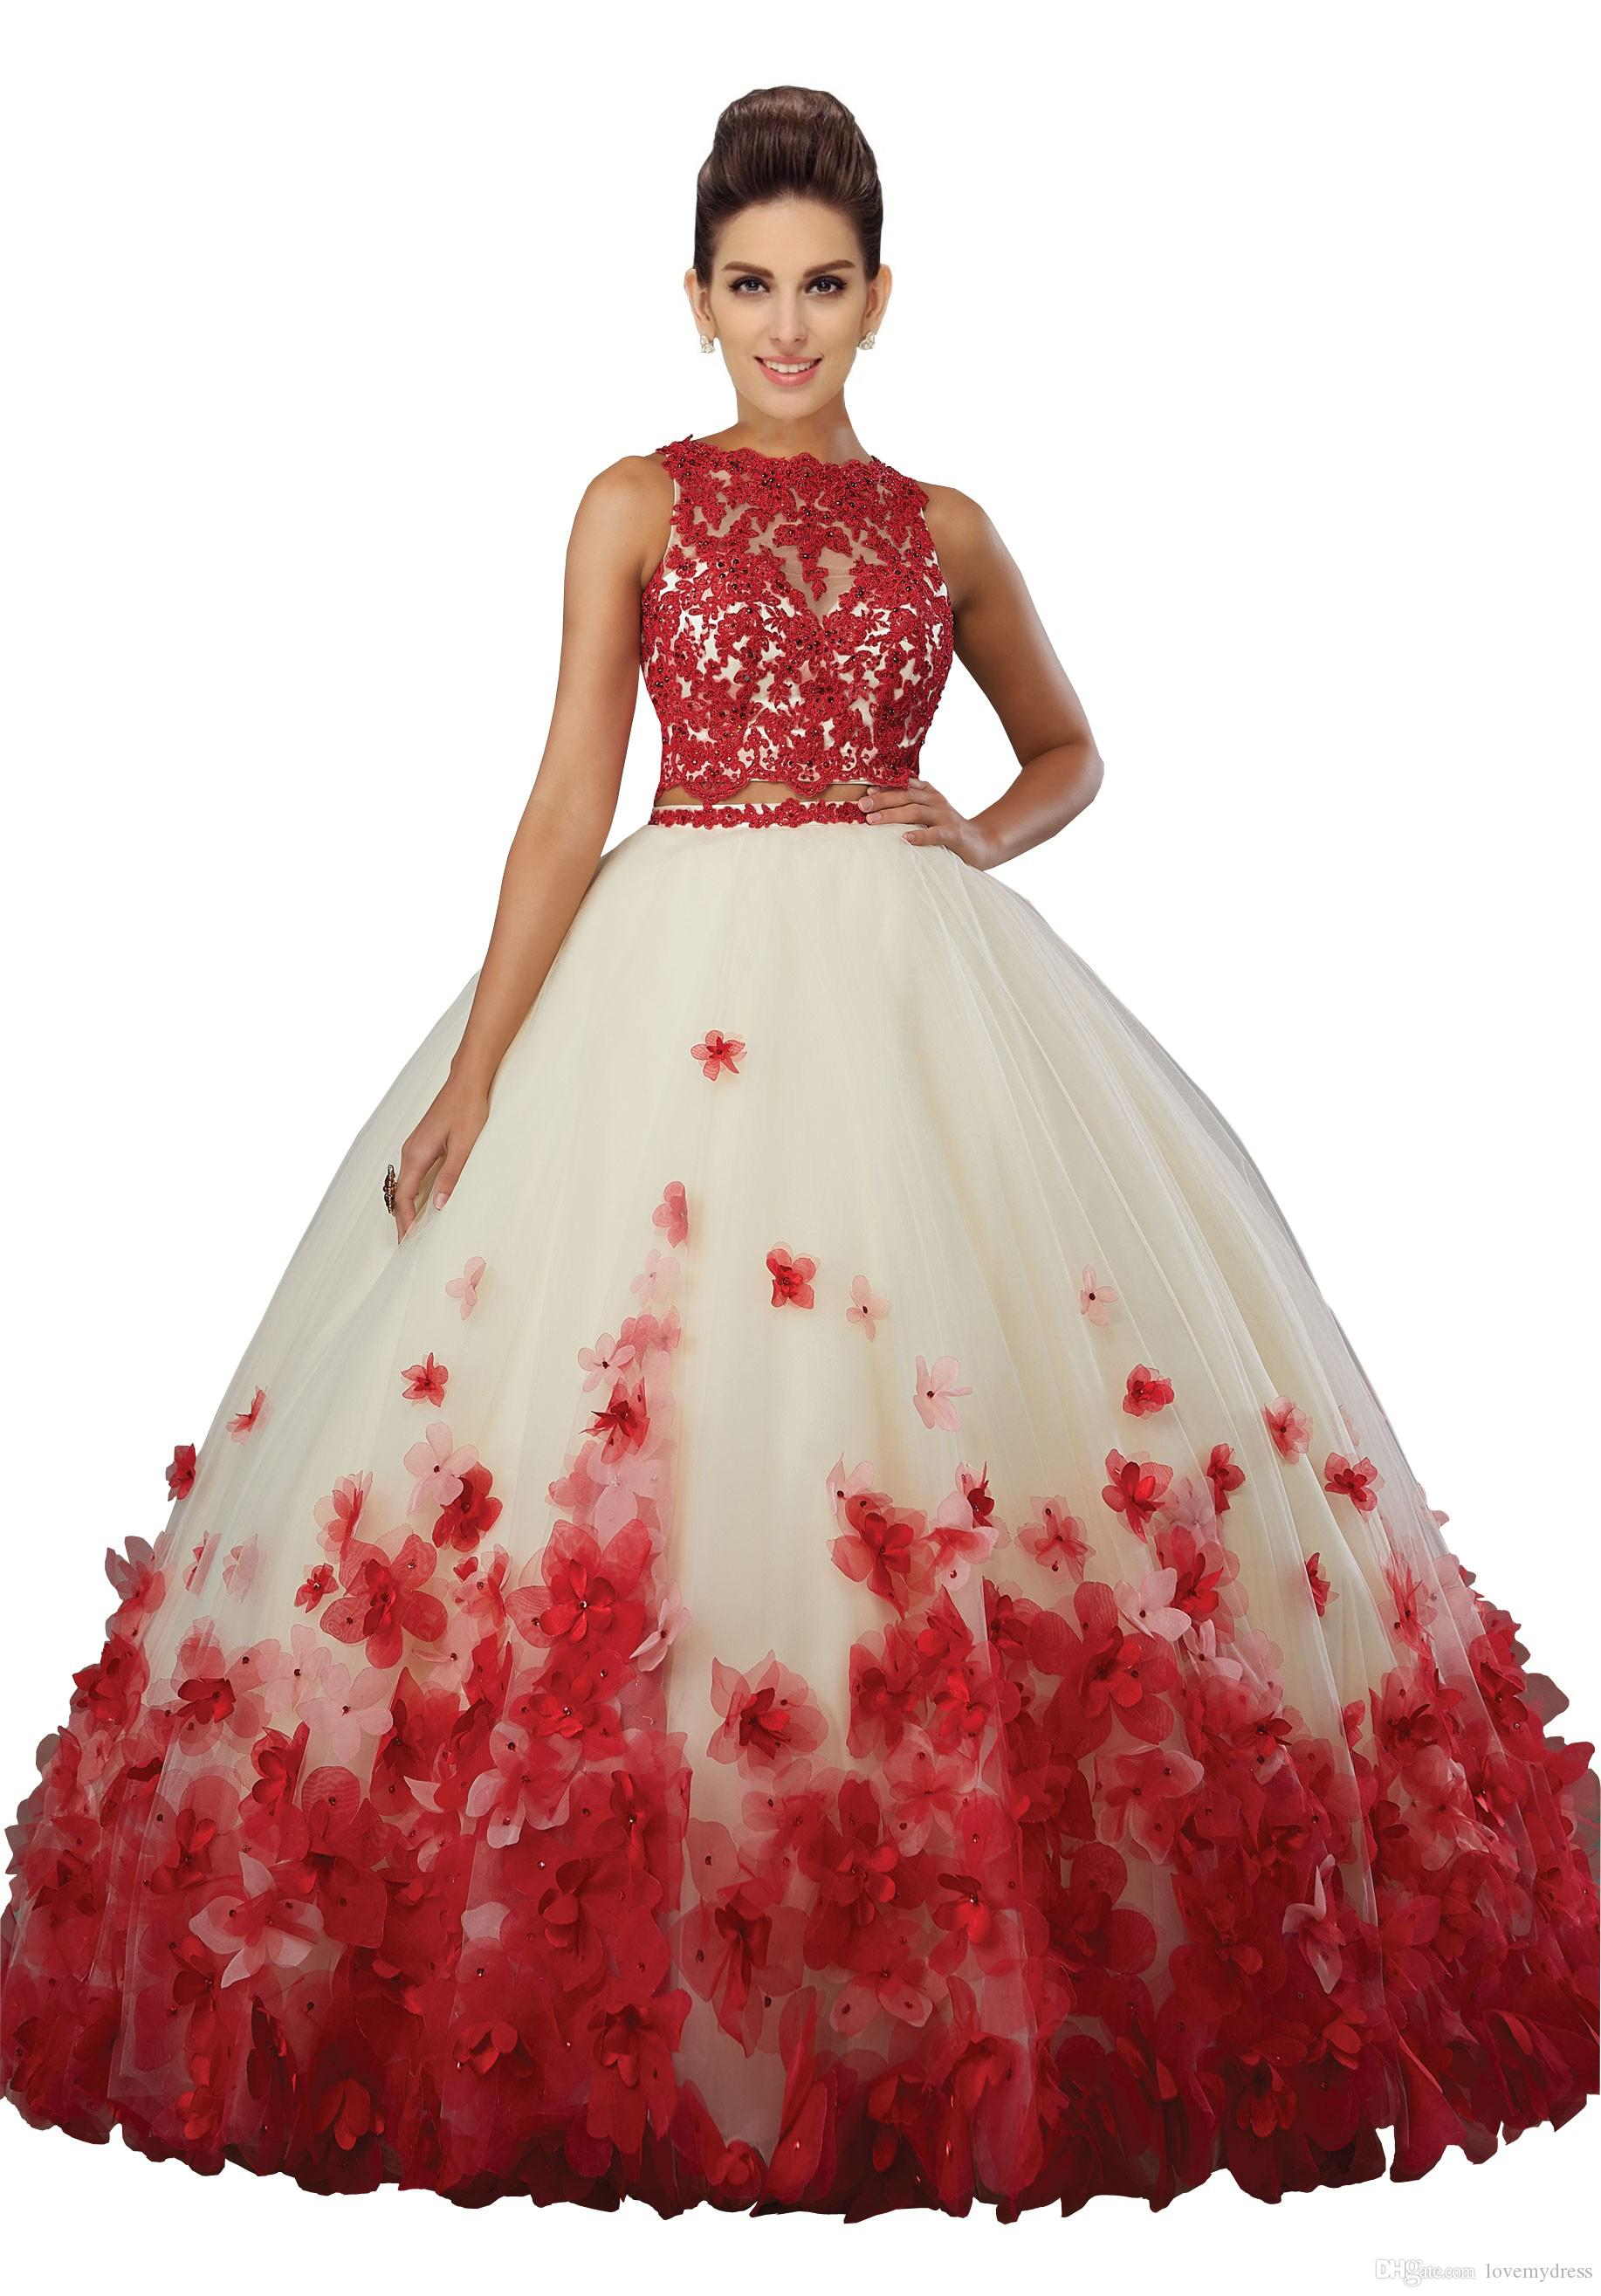 f16a0c5a768 Fashion Two Pieces Quinceanera Prom Dresses Cheap 2019 New Stylish 3D  Floral Flowers Sheer Jewel Neck Applique Red Lace Bead Sweet 16 Dress